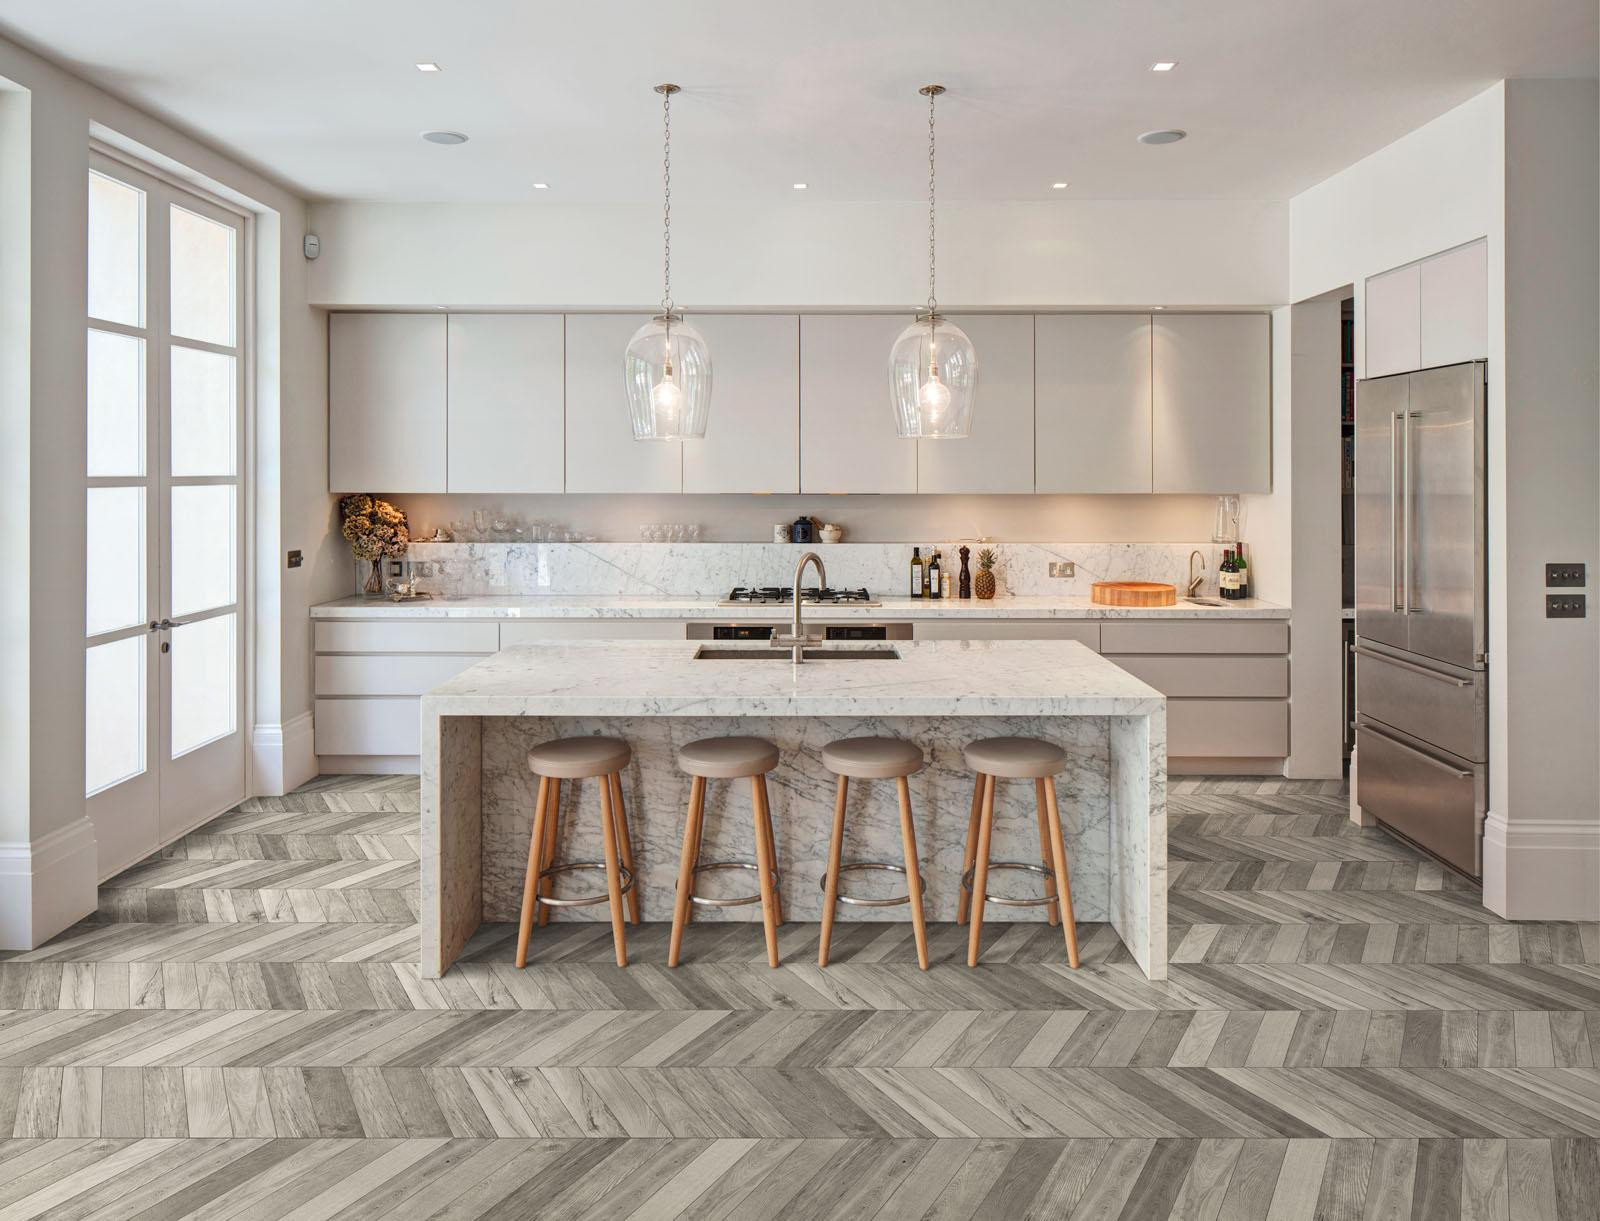 Hardwood Floors Vs Wood Look Tile Of Treverksoul Wood Effect Stoneware Marazzi Intended for Treverksoul Wood Effect Kitchen